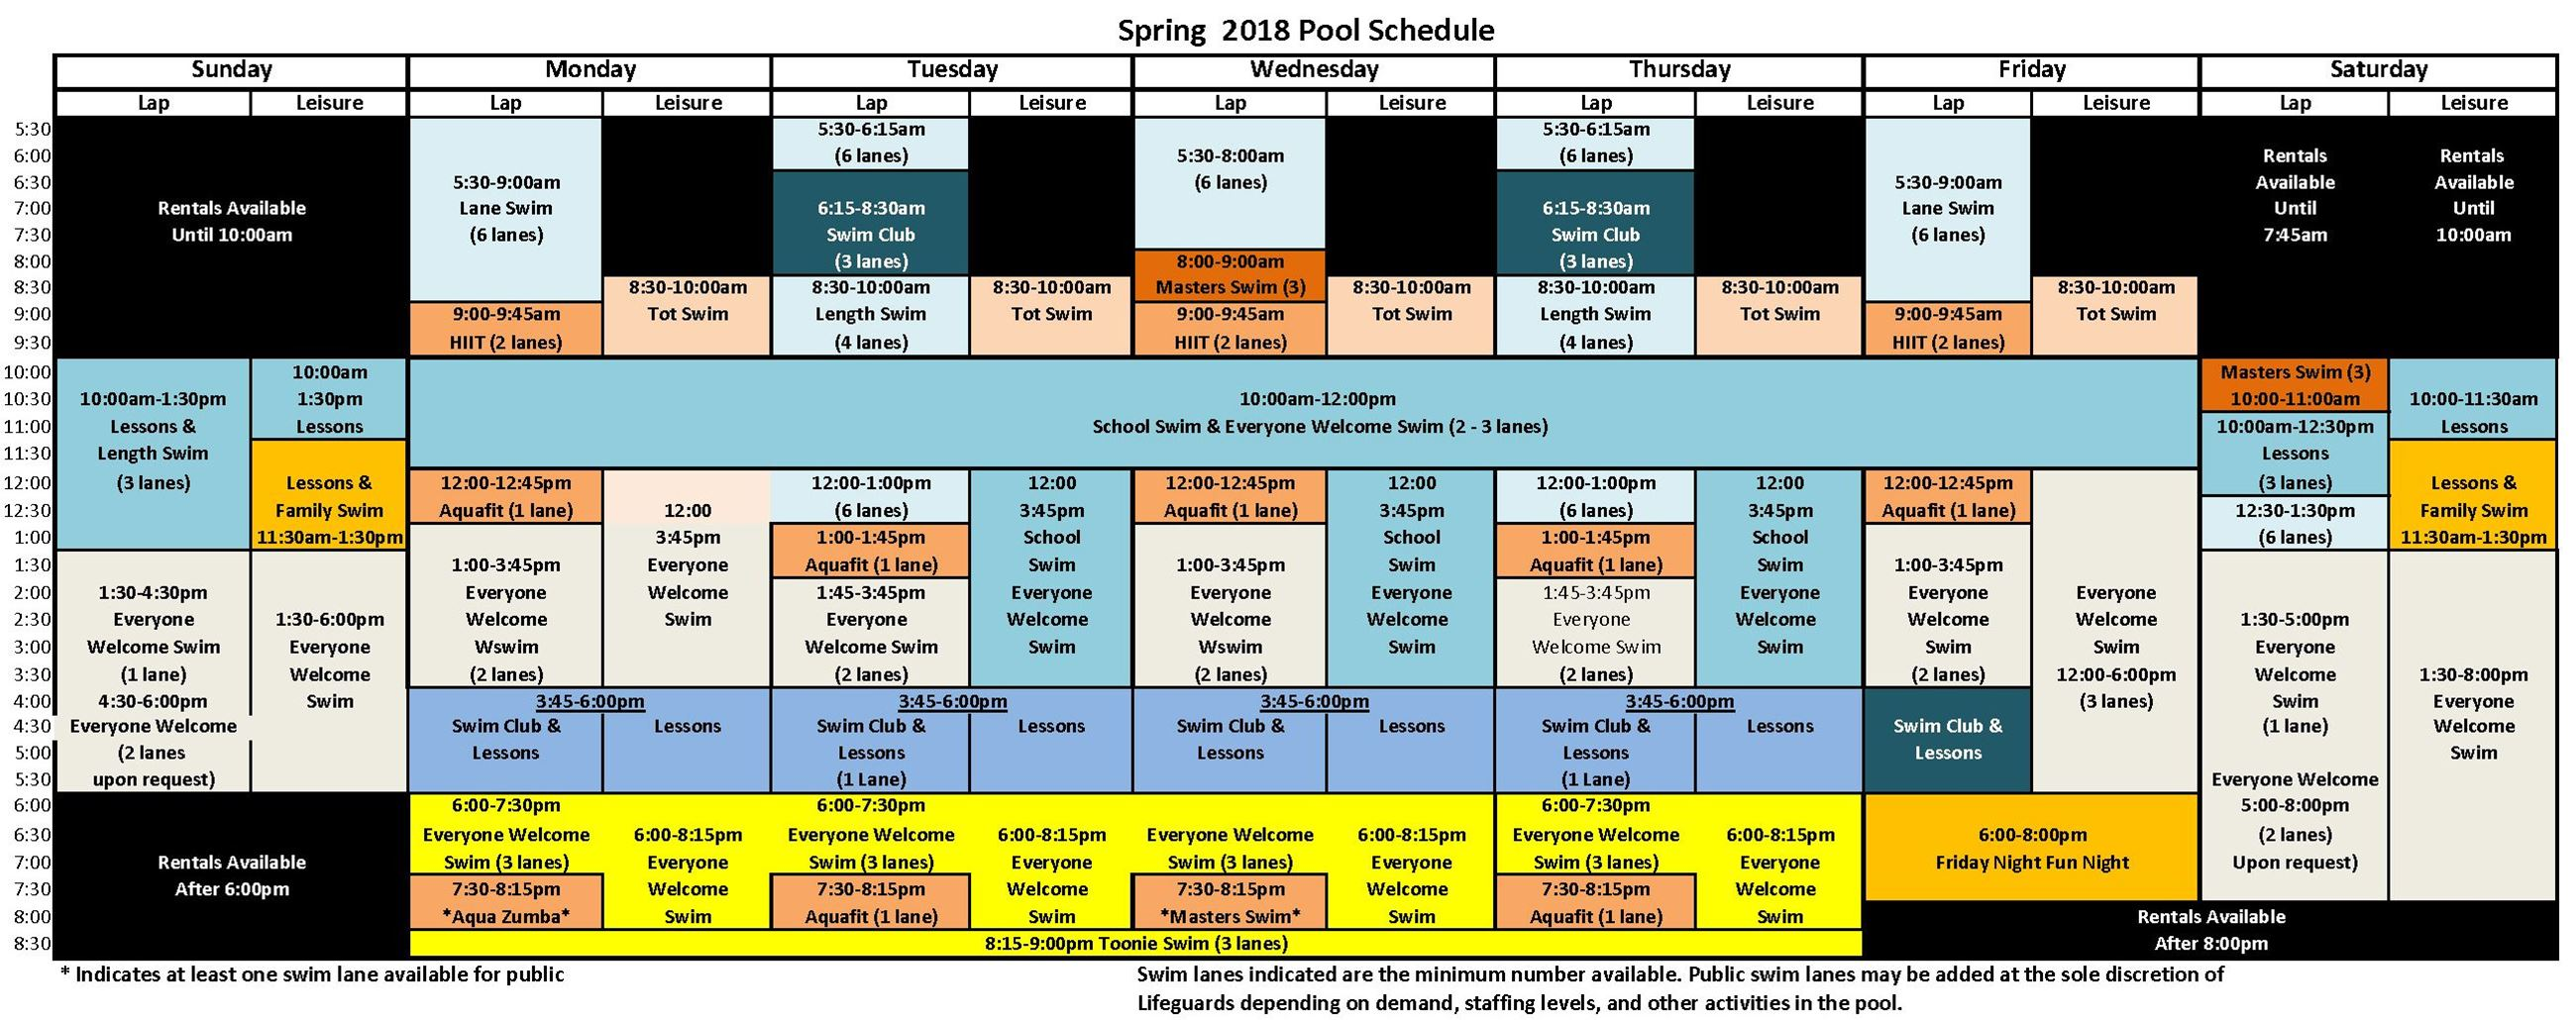 Spring 2018 Pool Schedule colour